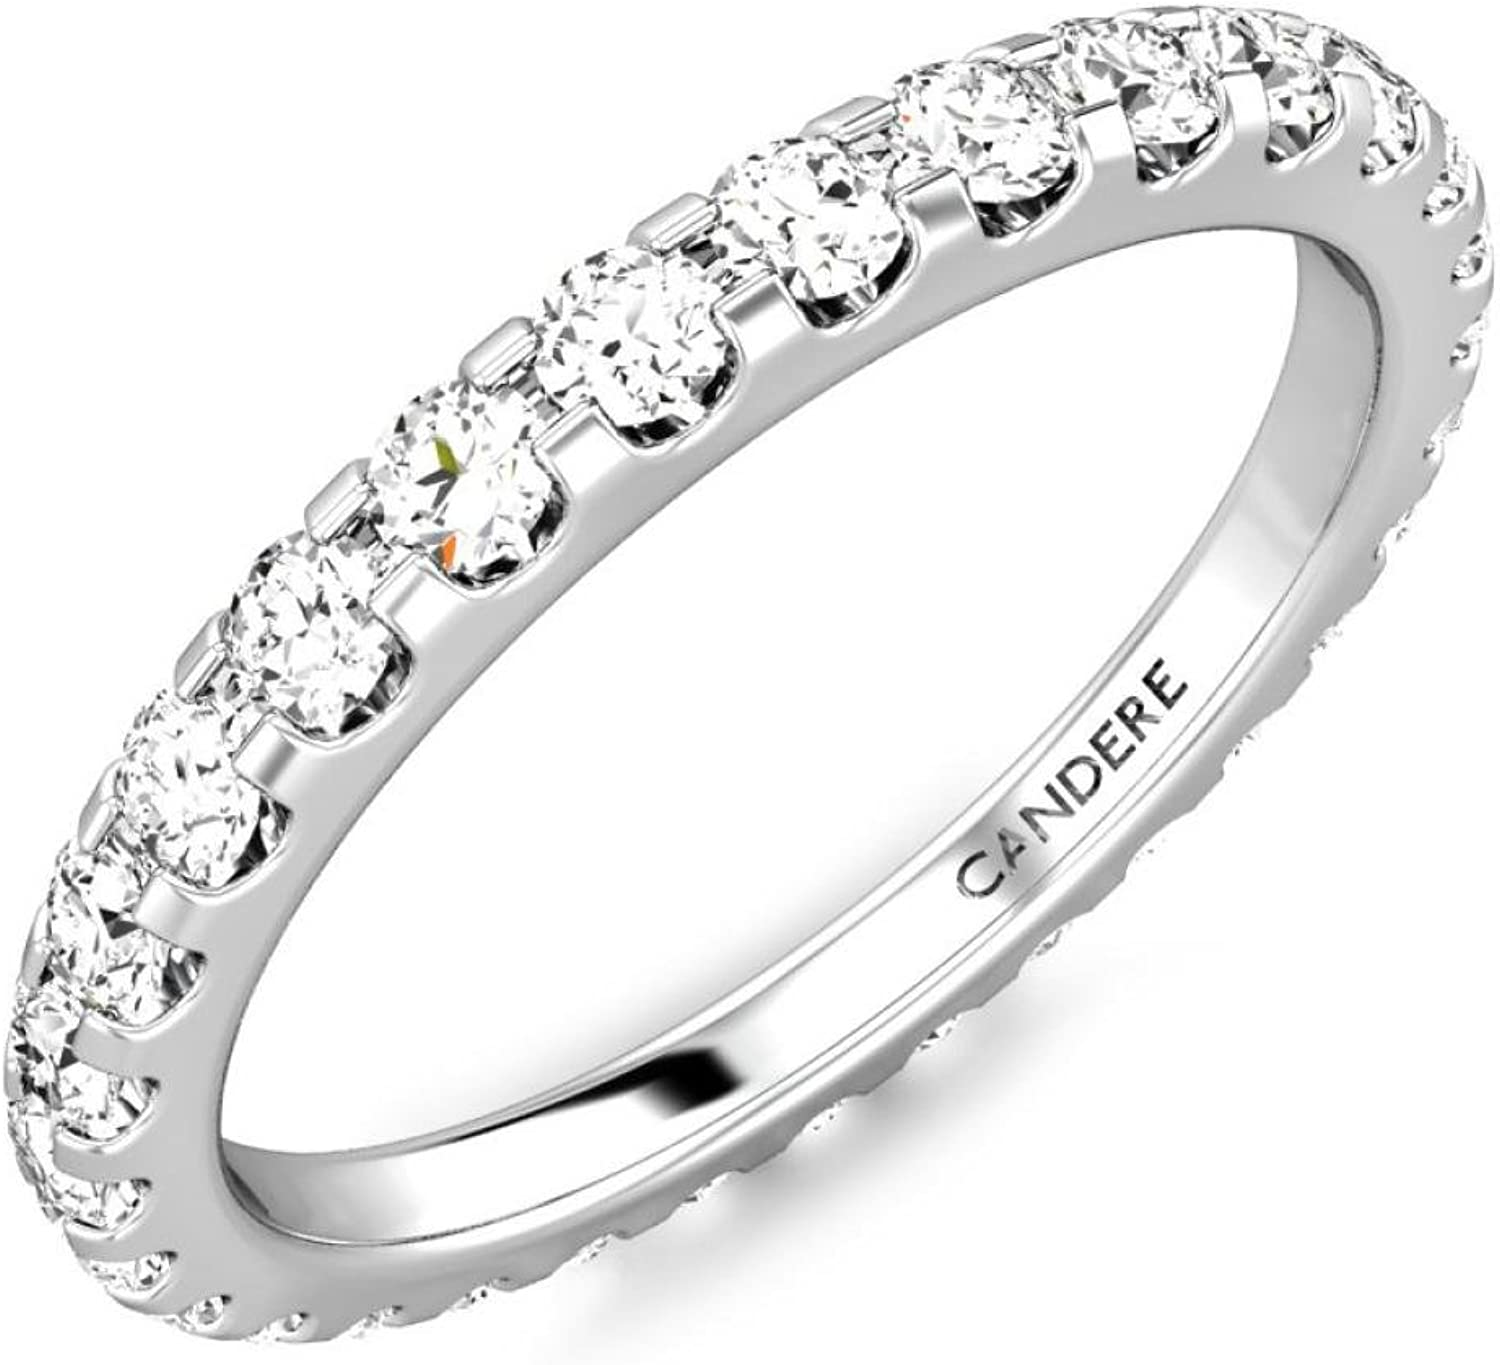 3 5 cttw (0.60 ct) Full Eternity Wedding Engagement Diamond Ring for Women in 925 Sterling Silver & 14K gold (IJ SI1SI2)